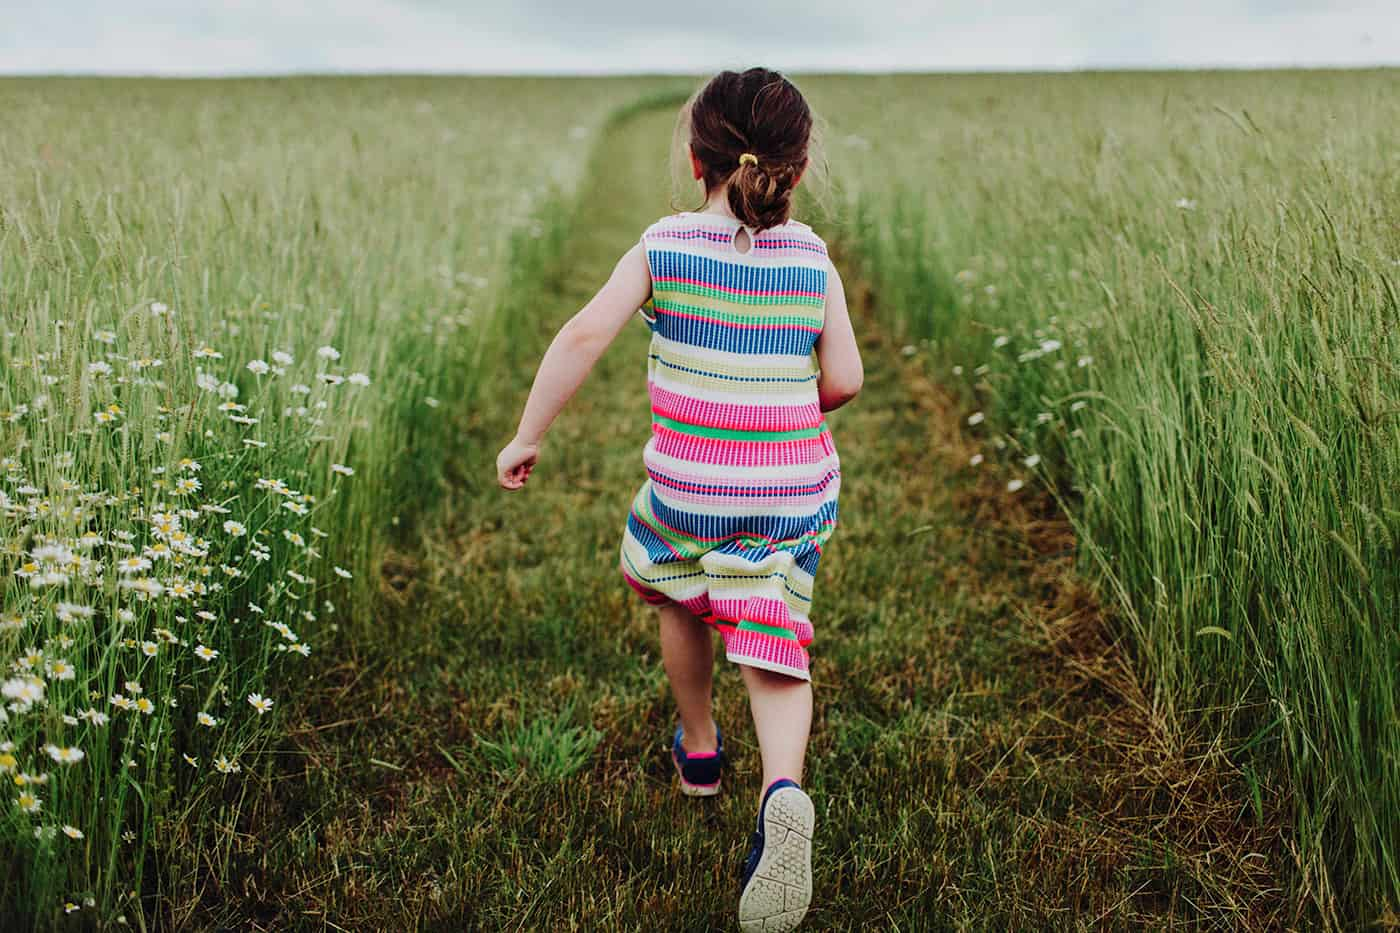 girl running in field